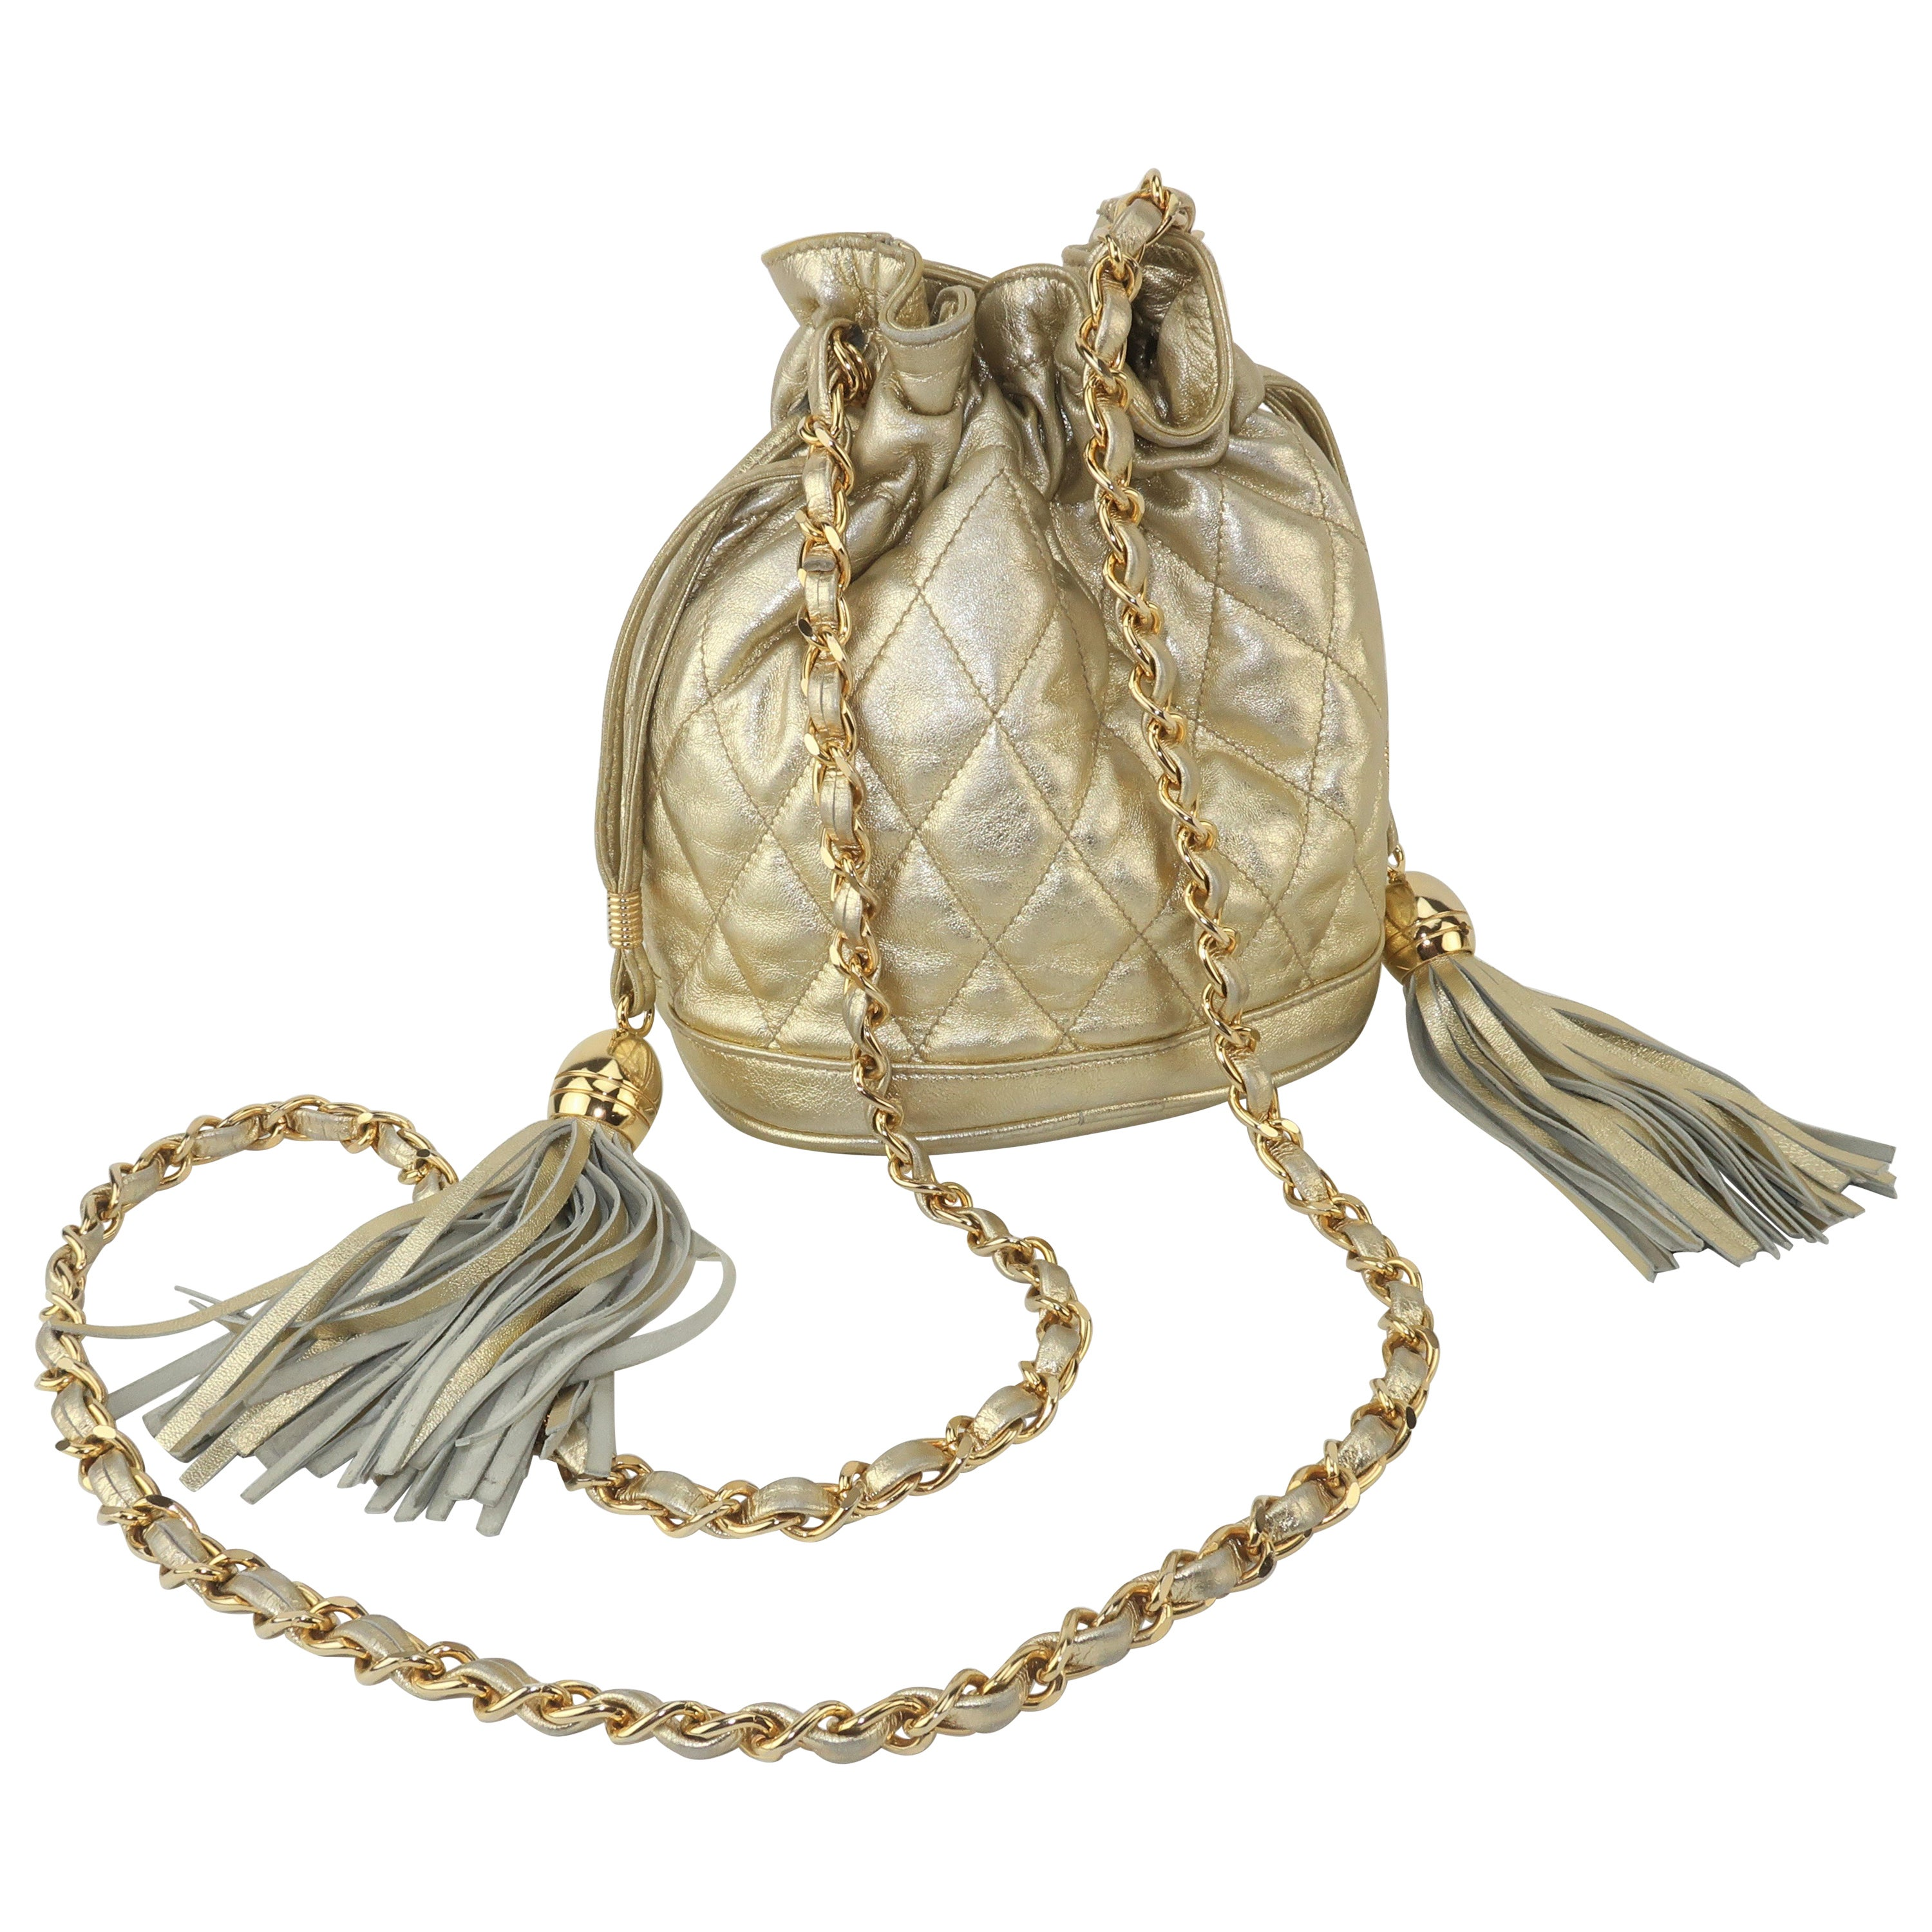 e7c2b5e2f853 Vintage Quilted Gold Leather Hobo Handbag With Chain Handle at 1stdibs